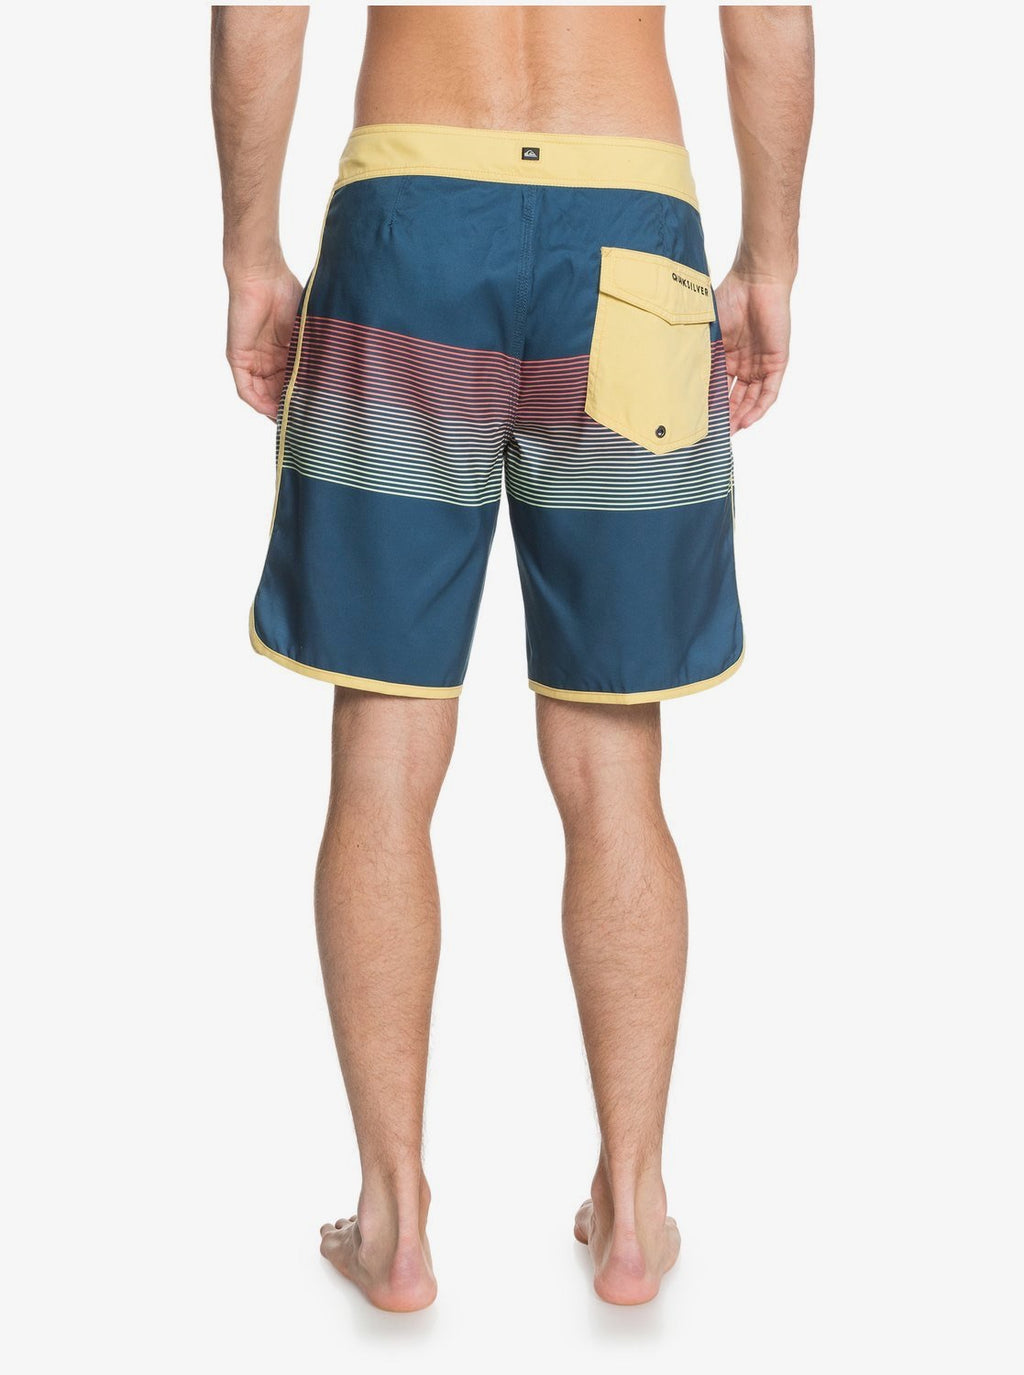 Everyday Grass Roots Boardshorts